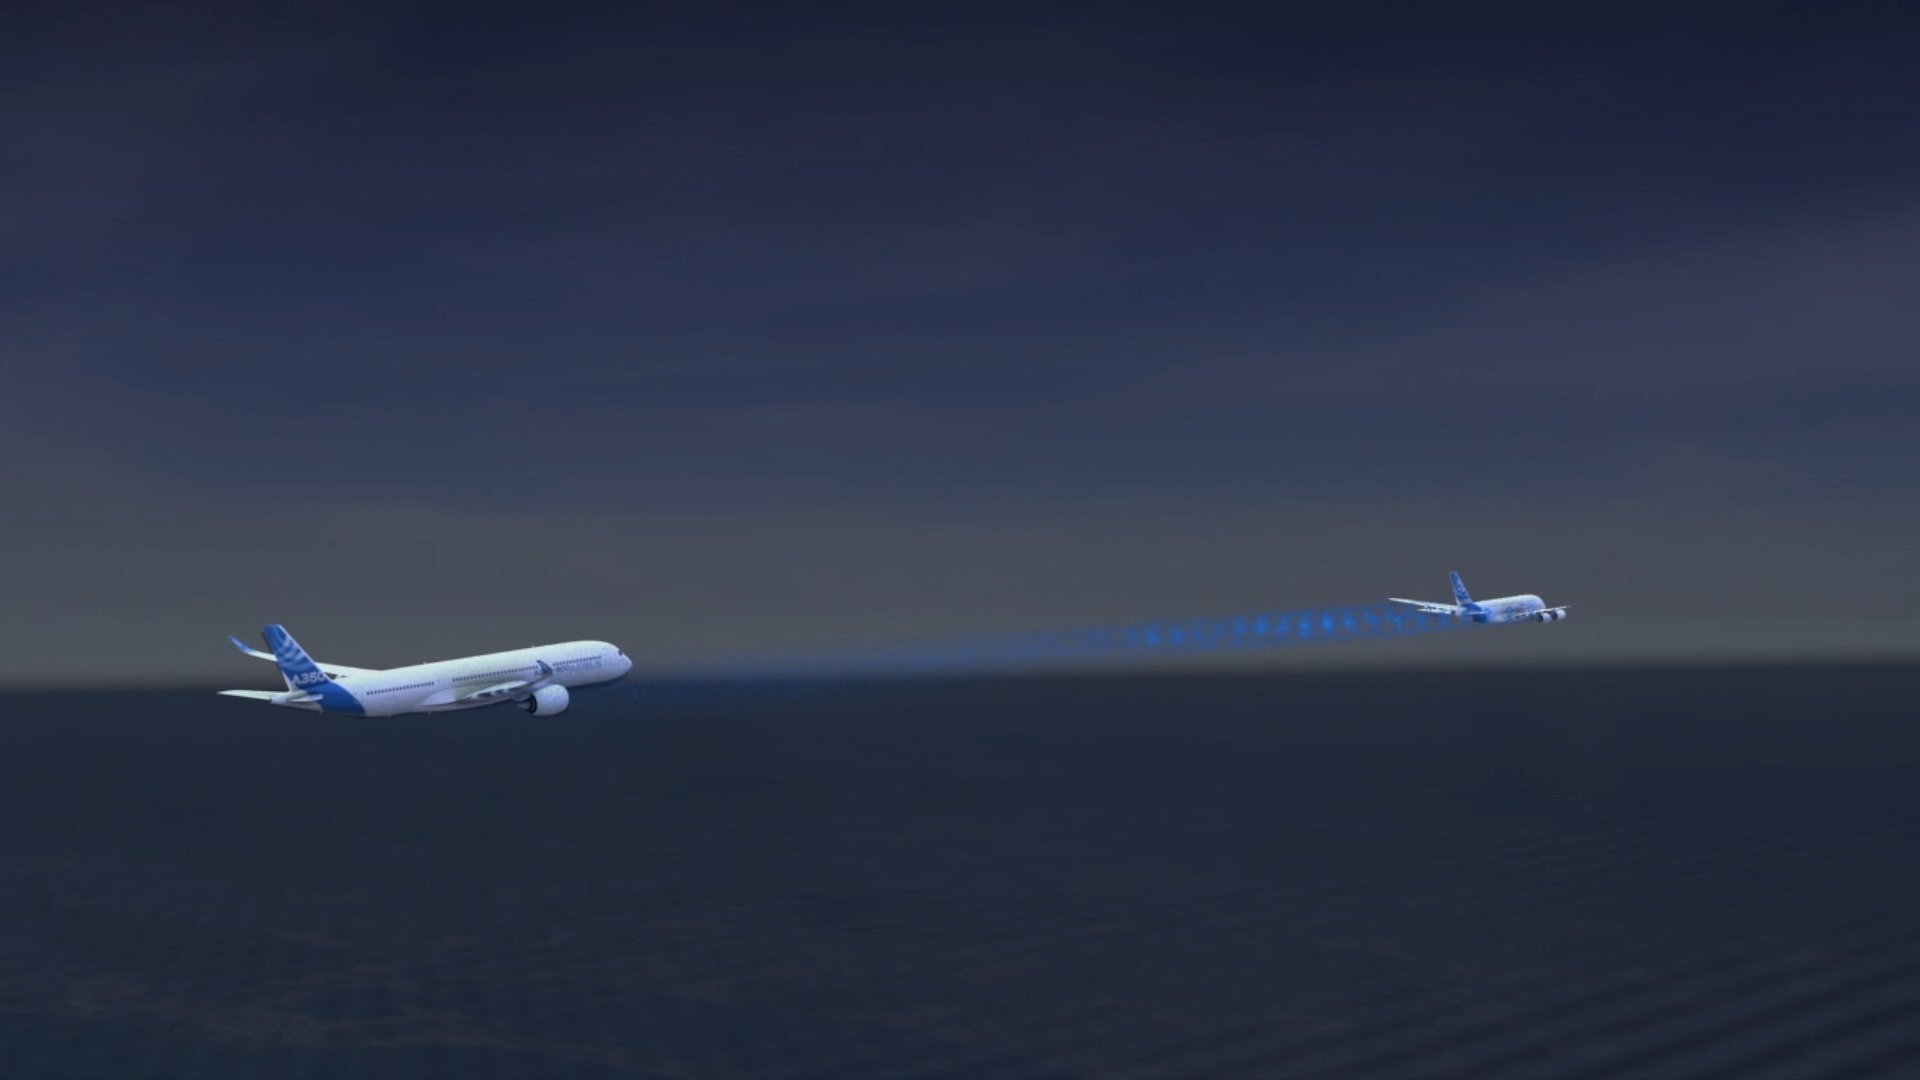 Airlines are looking to reduce fuel consumption. Wake-energy retrieval could help